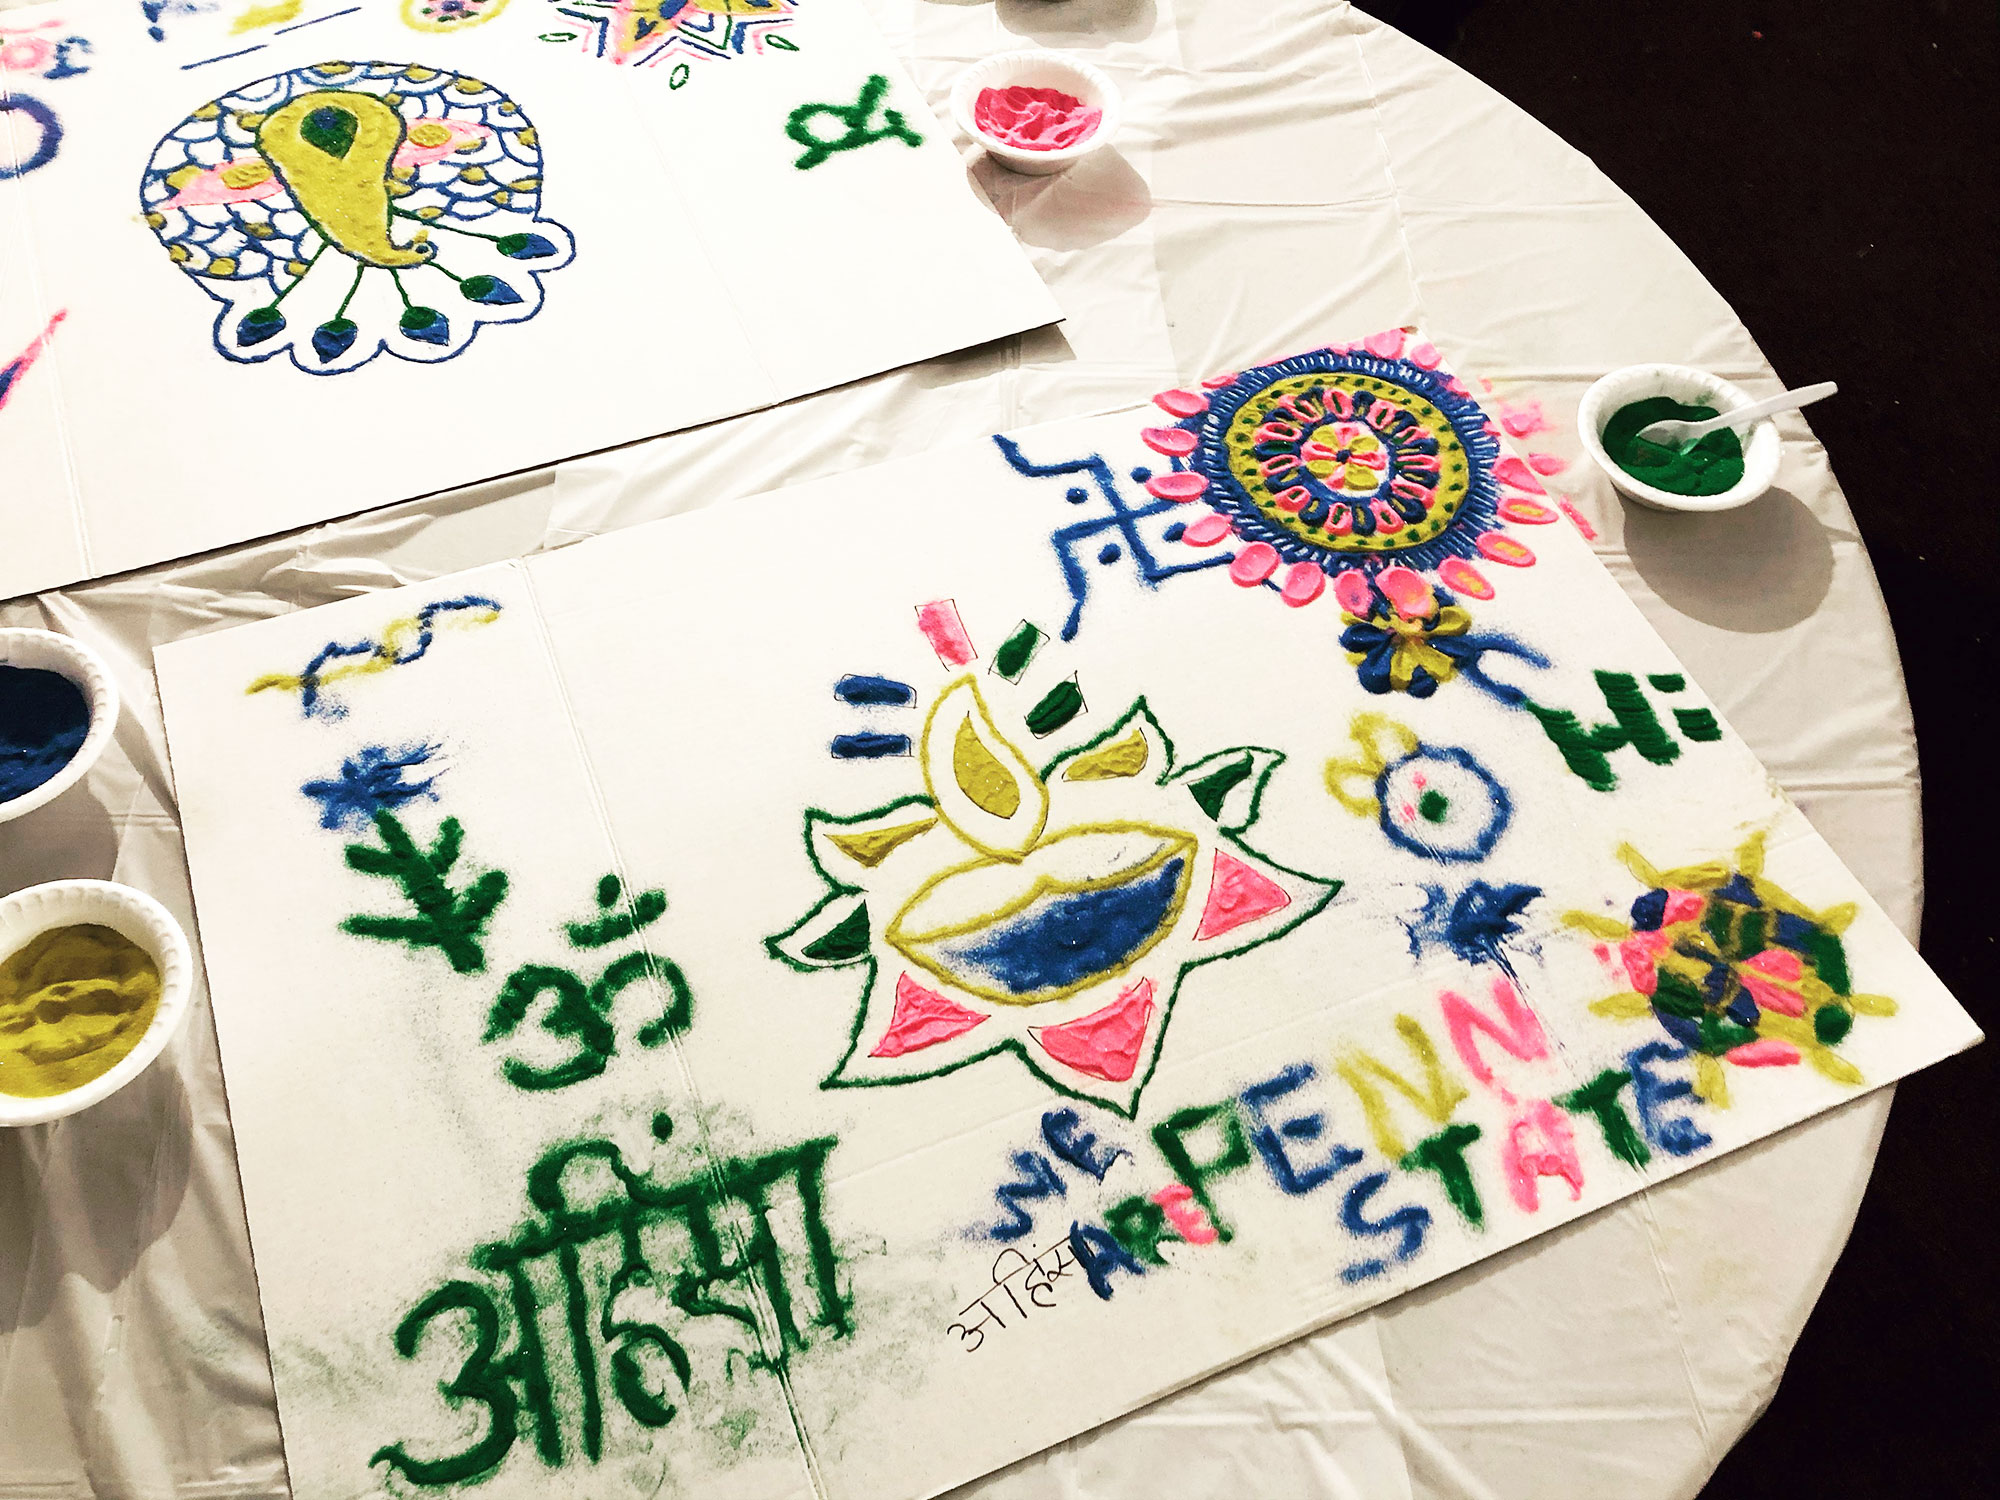 A piece of paper is covered in brightly colored drawings depicting flowers and geometric patterns, as well as the words We Are Penn State and writing in another language.